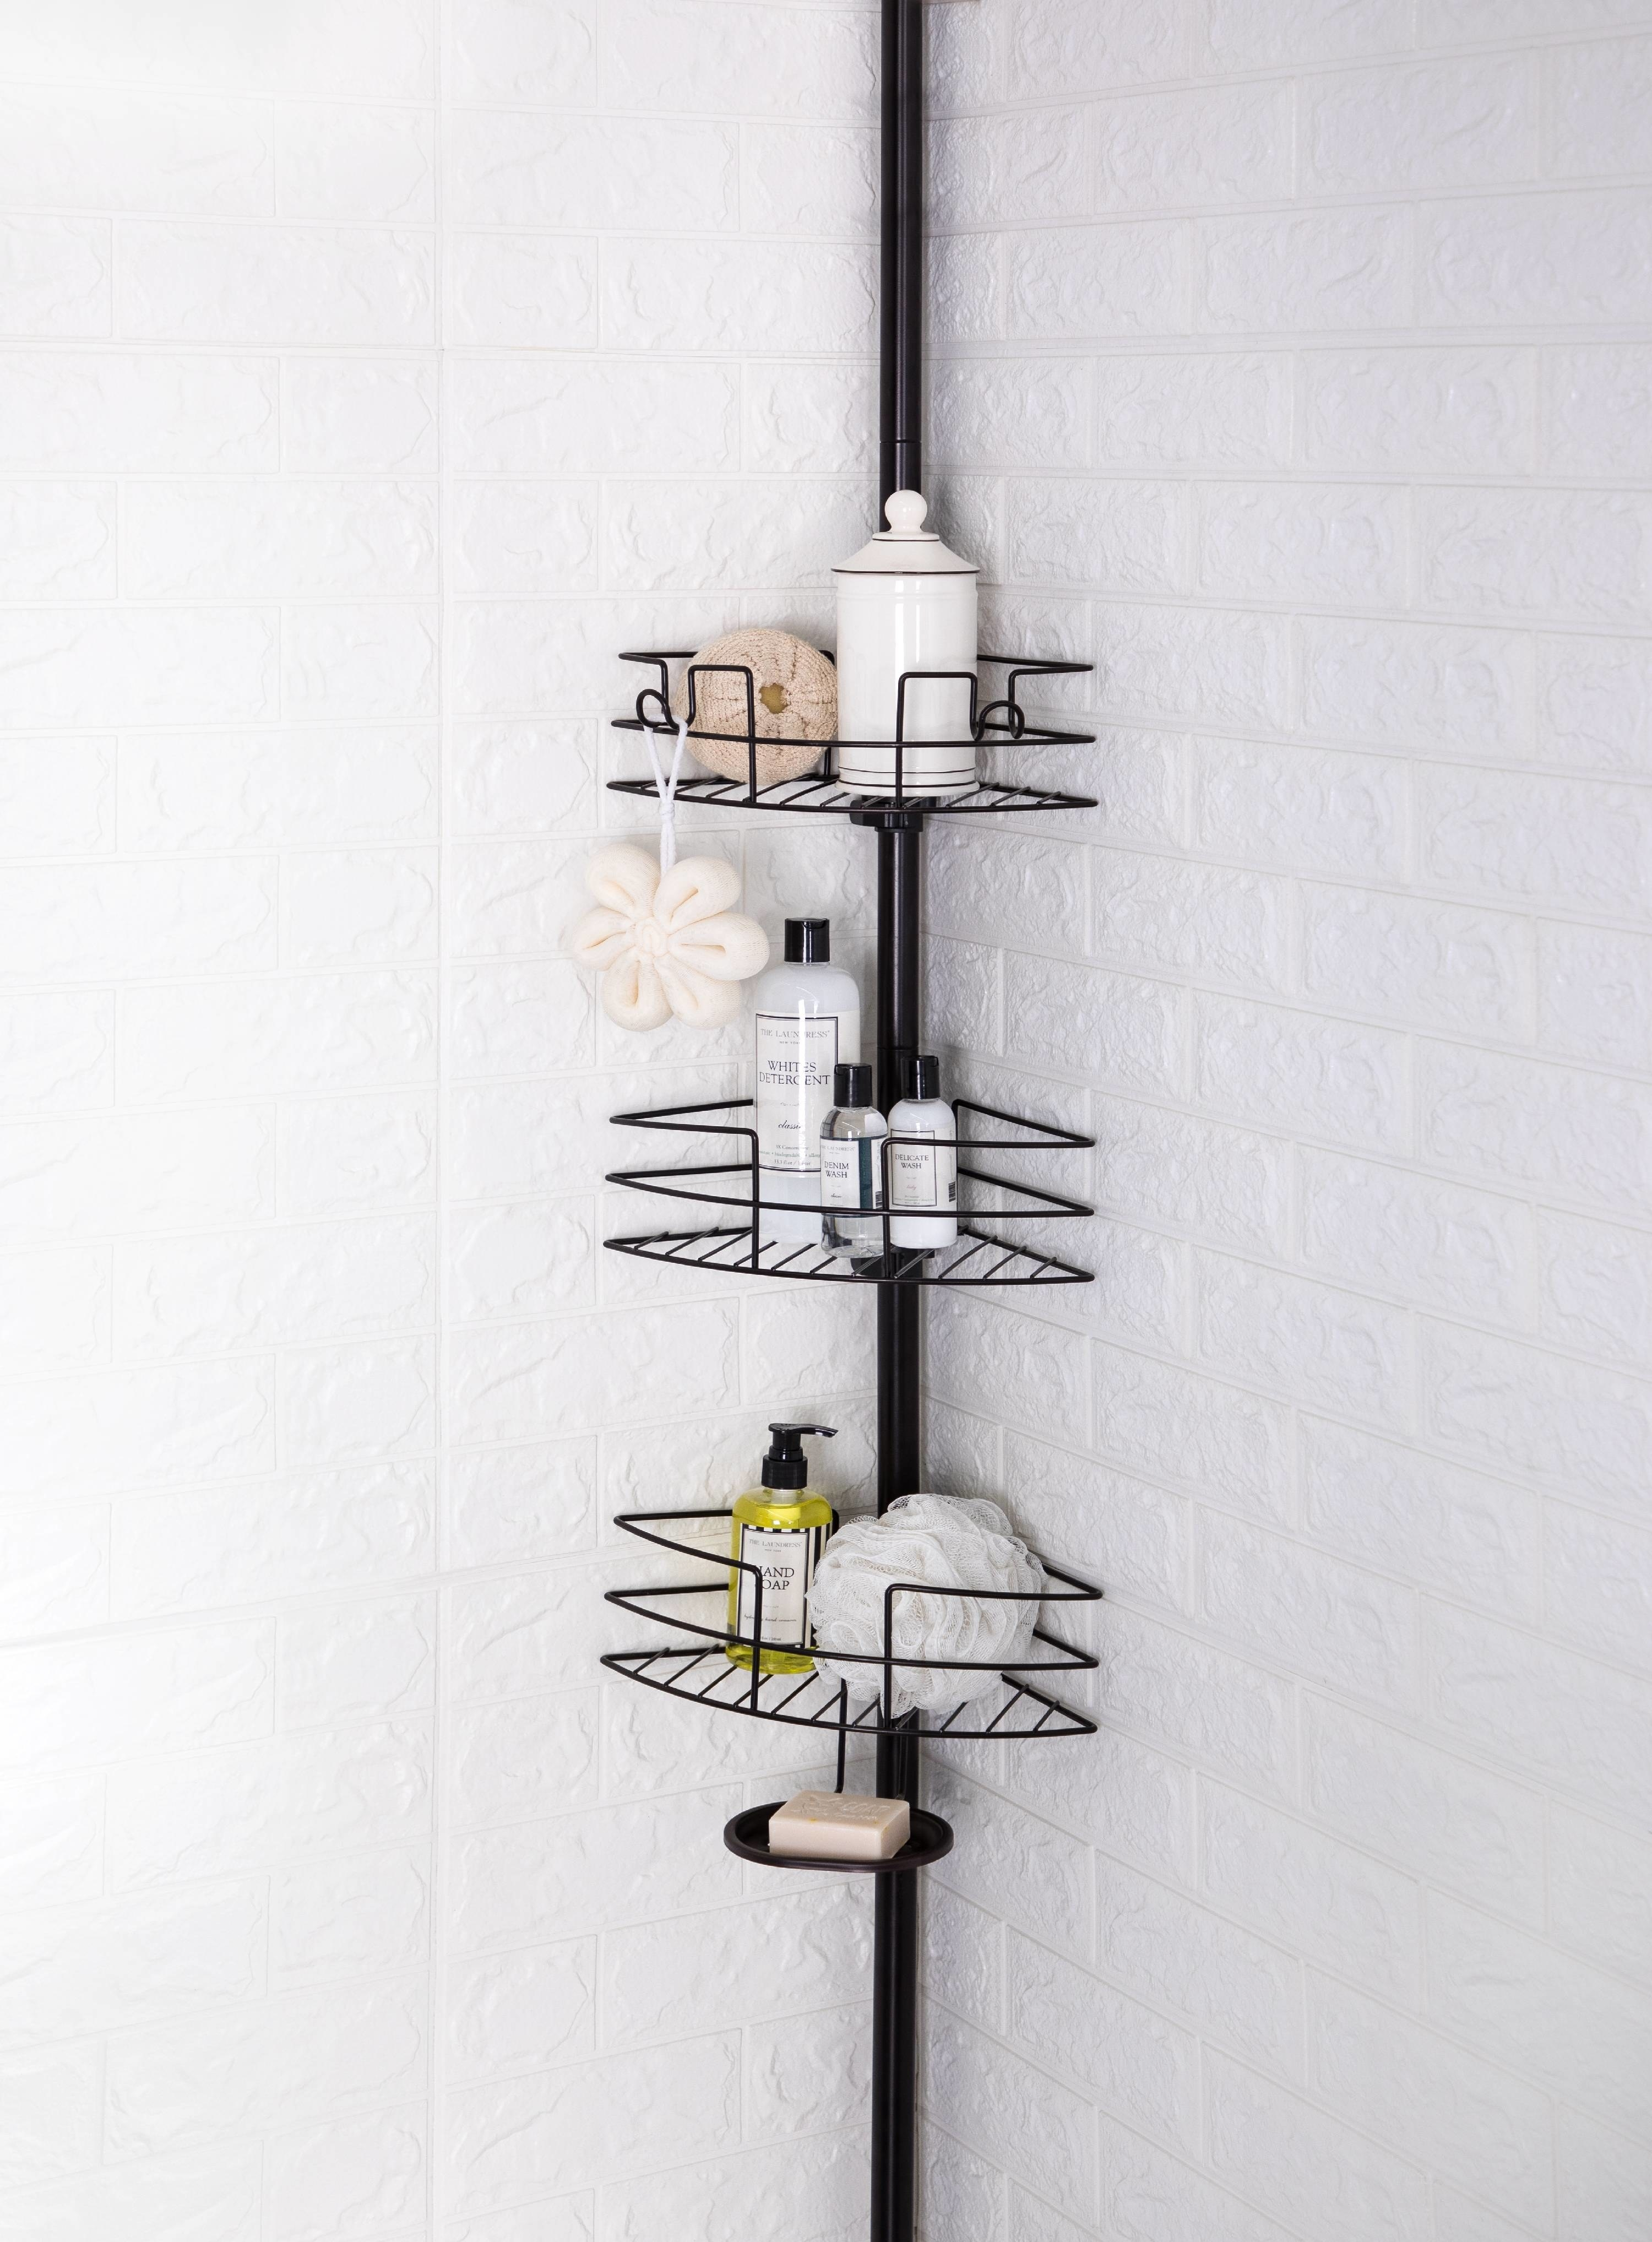 black shower caddy with three adjustable shelves and a soap dish